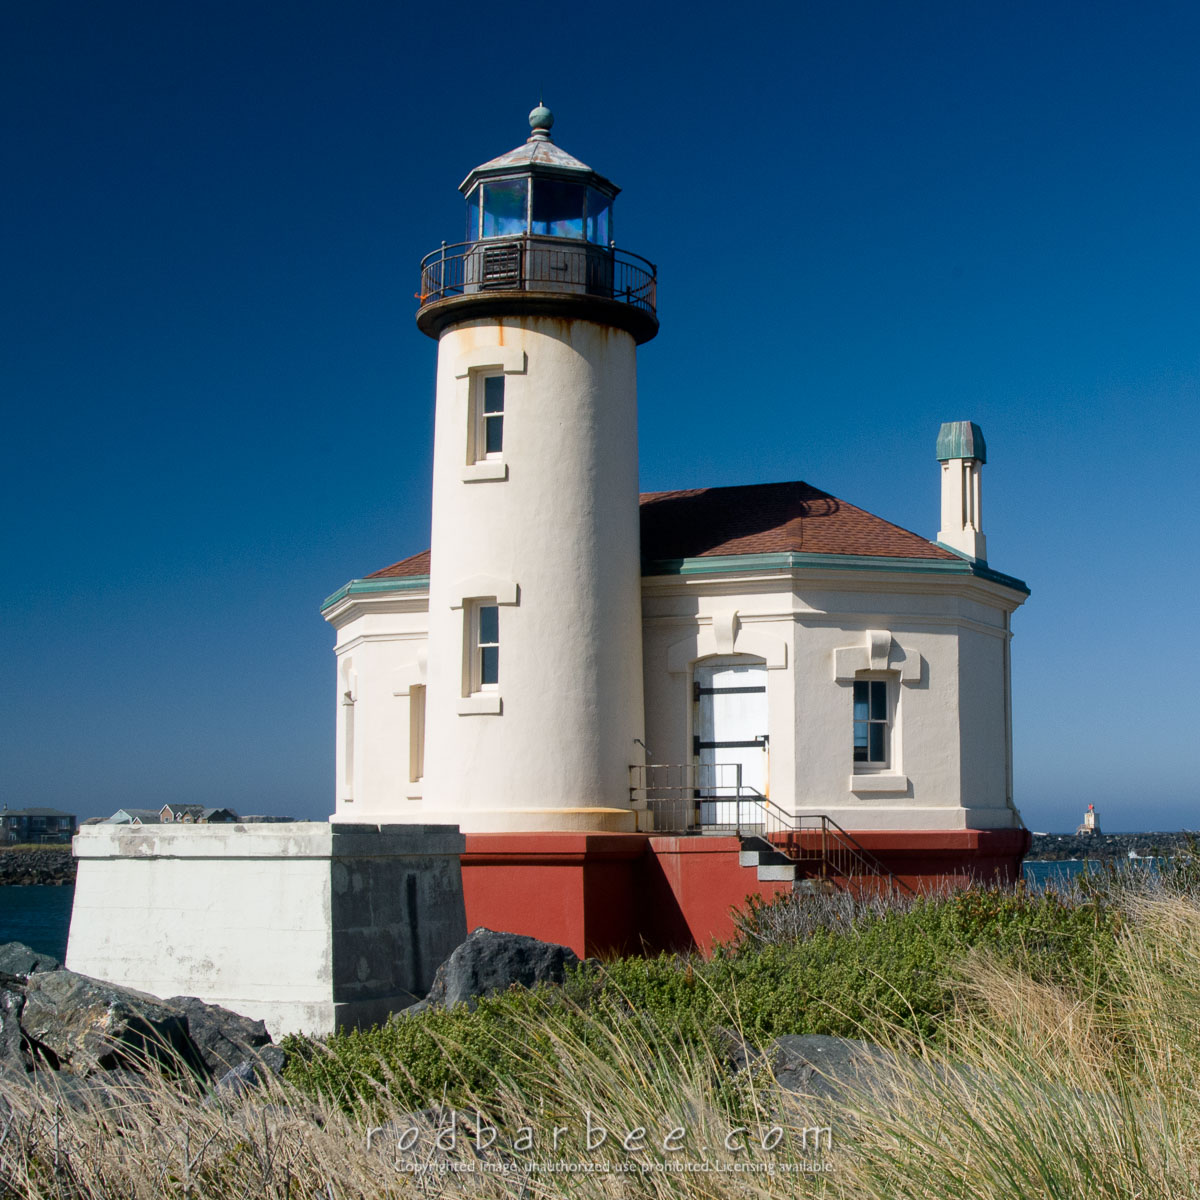 Barbee_110819_3_2858 |  Coquille River Lighthouse